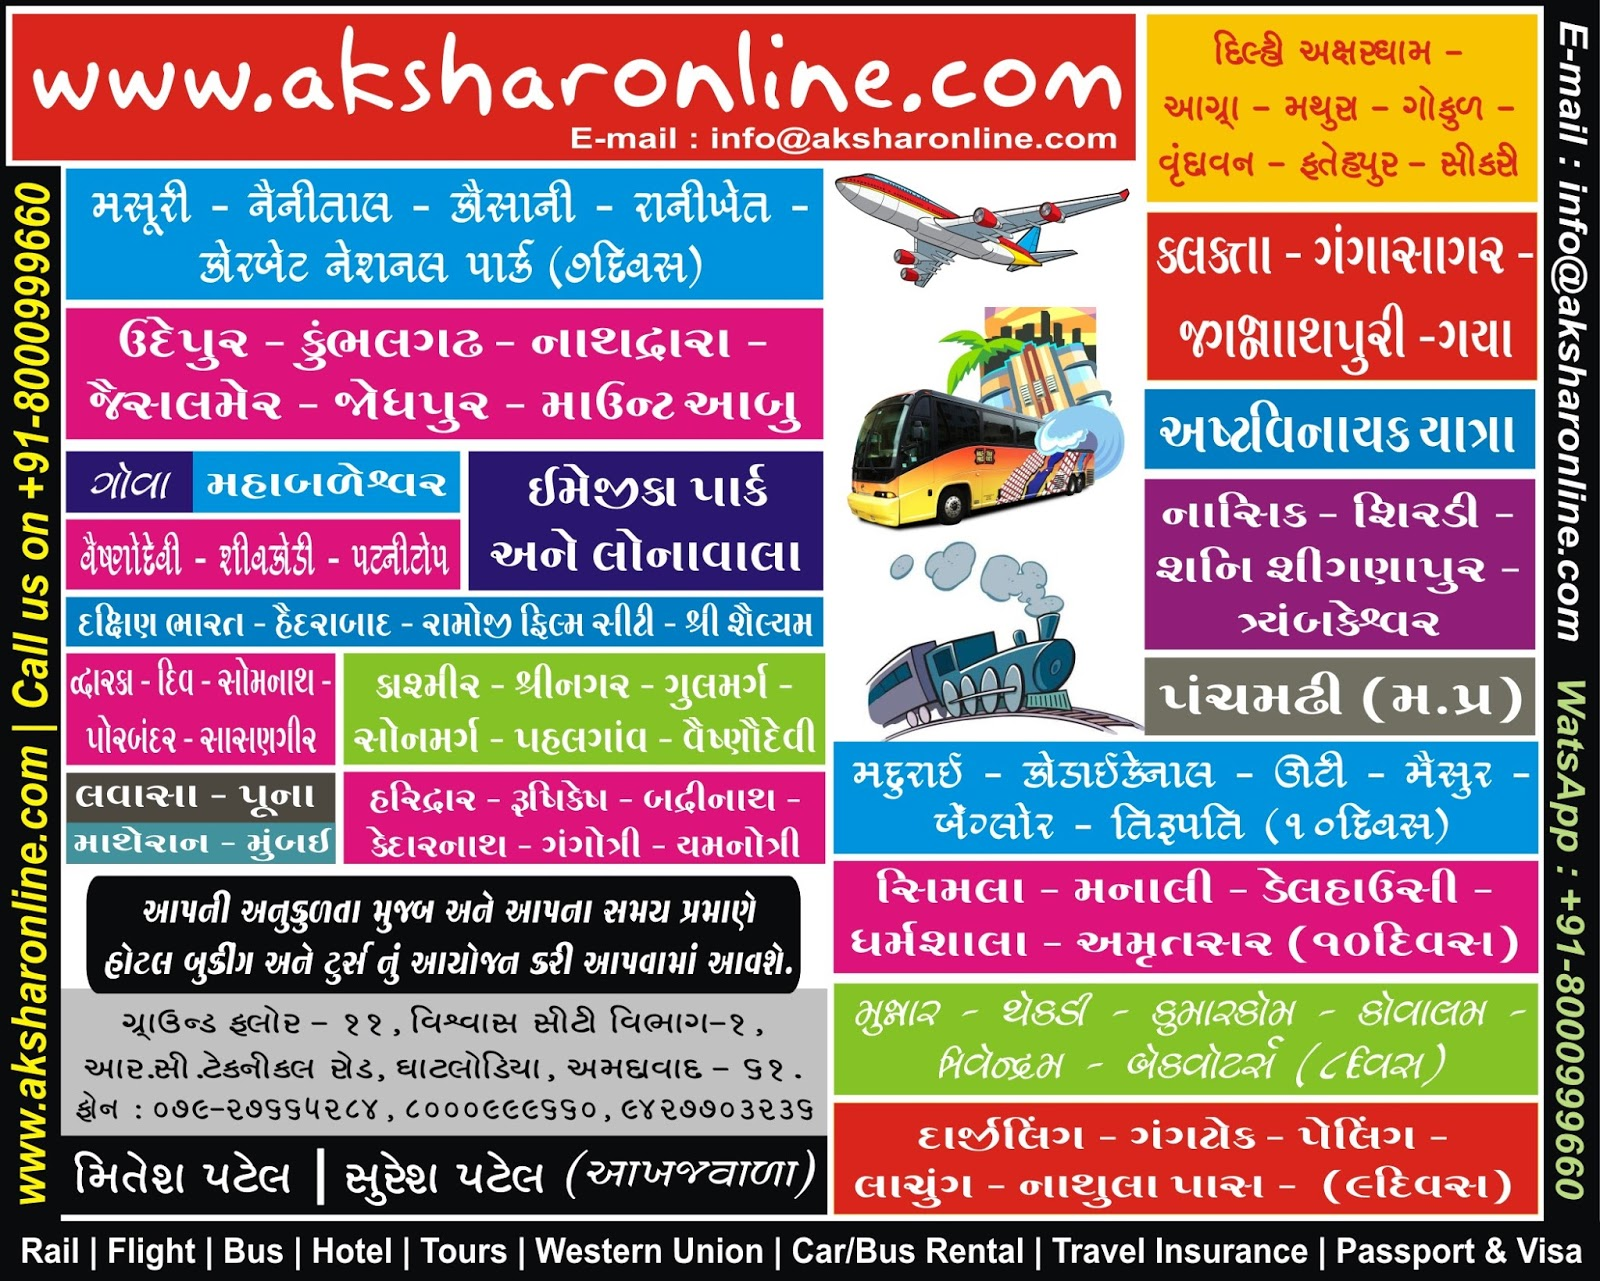 Travel Packages From Ahmedabad Lifehacked1st Com